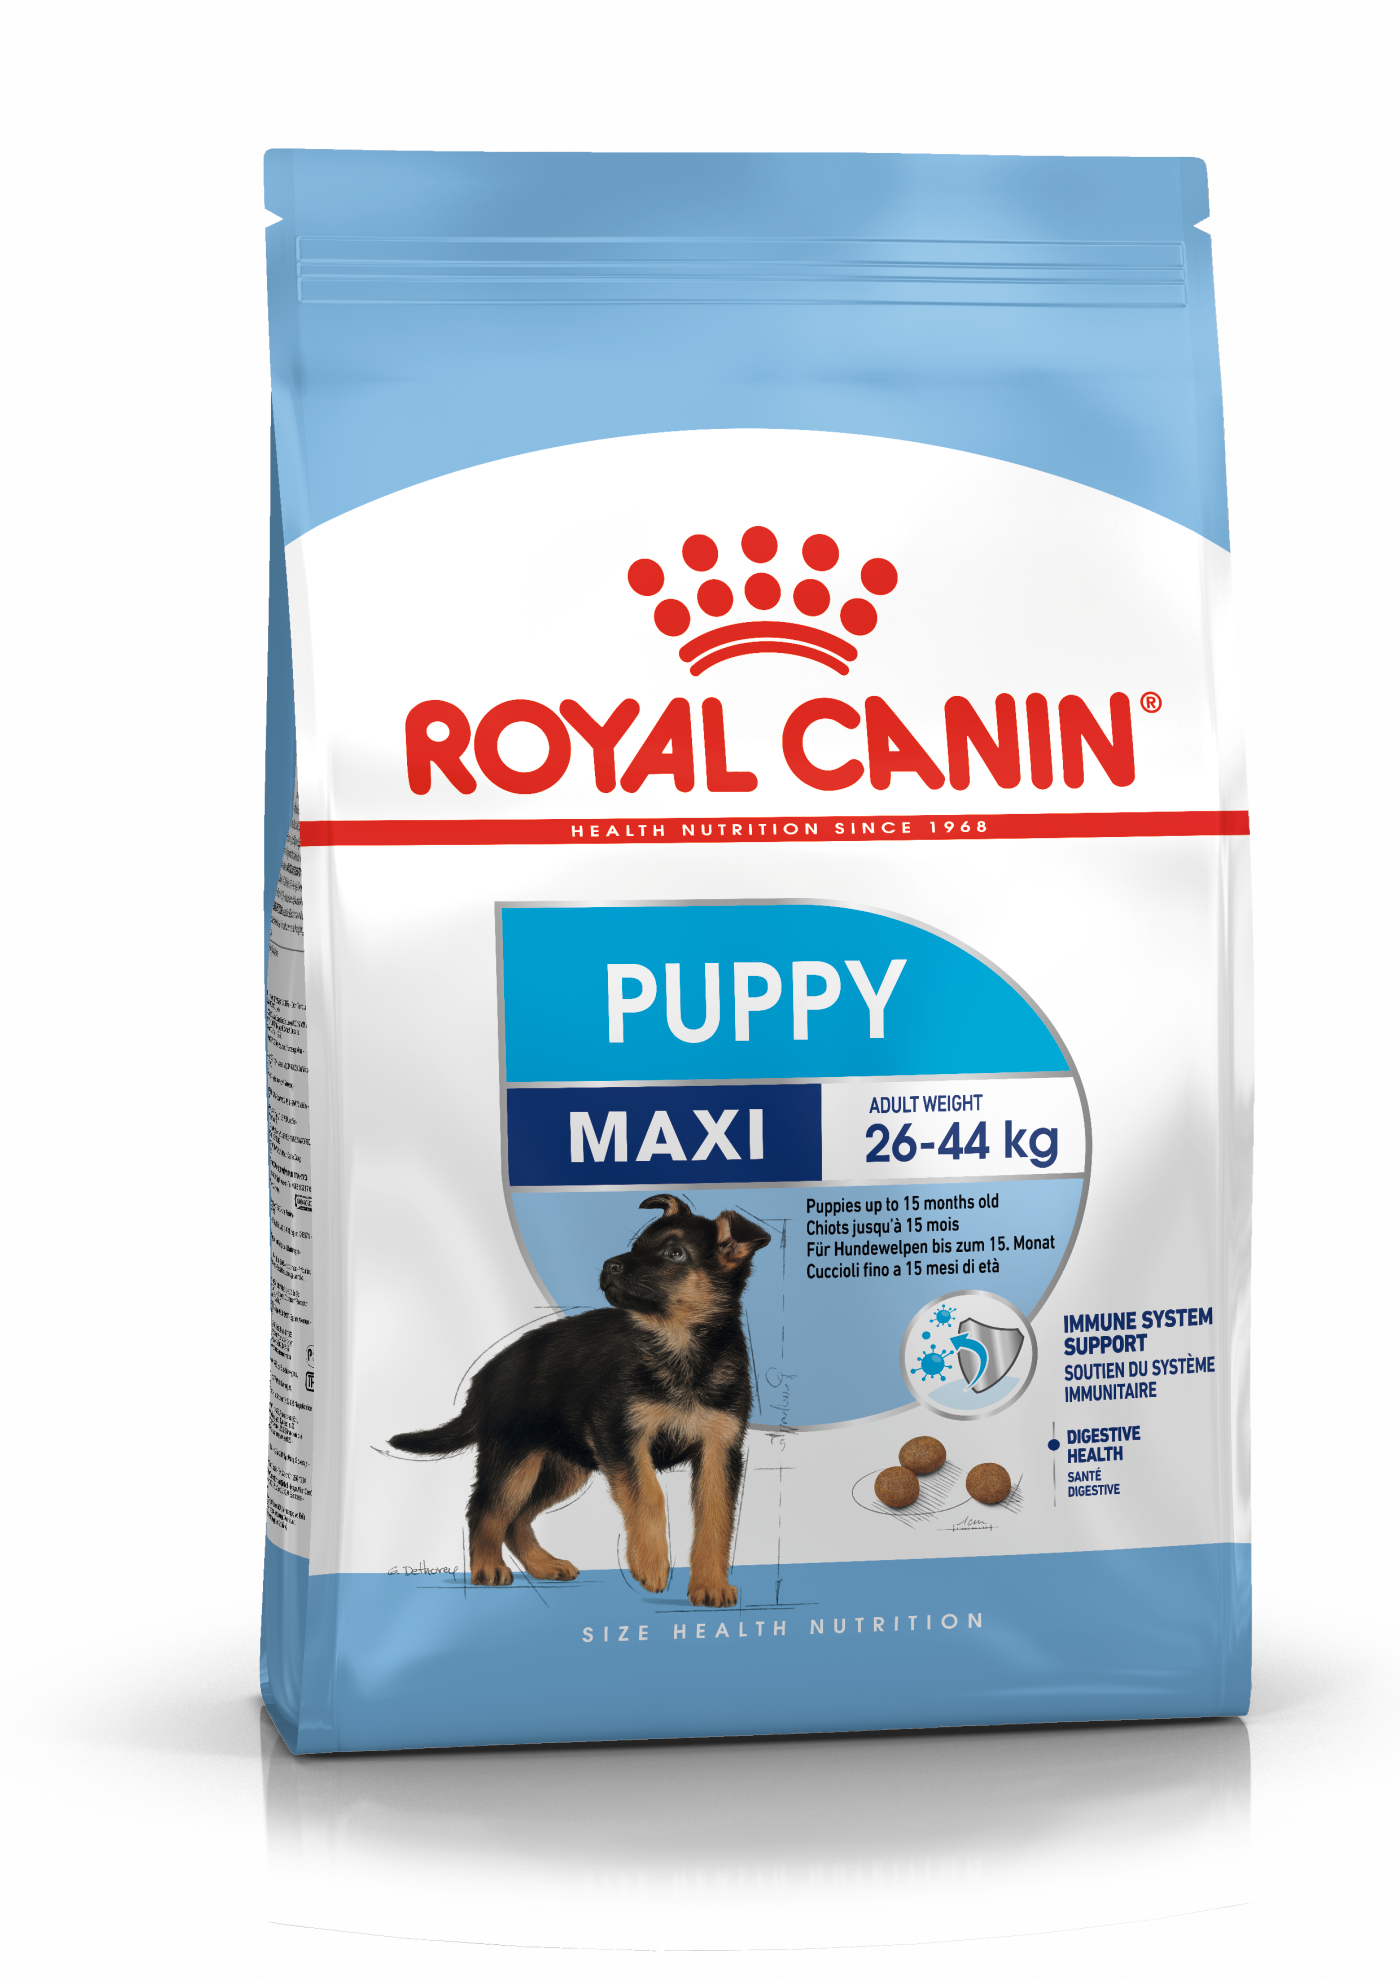 Maxi Puppy product image